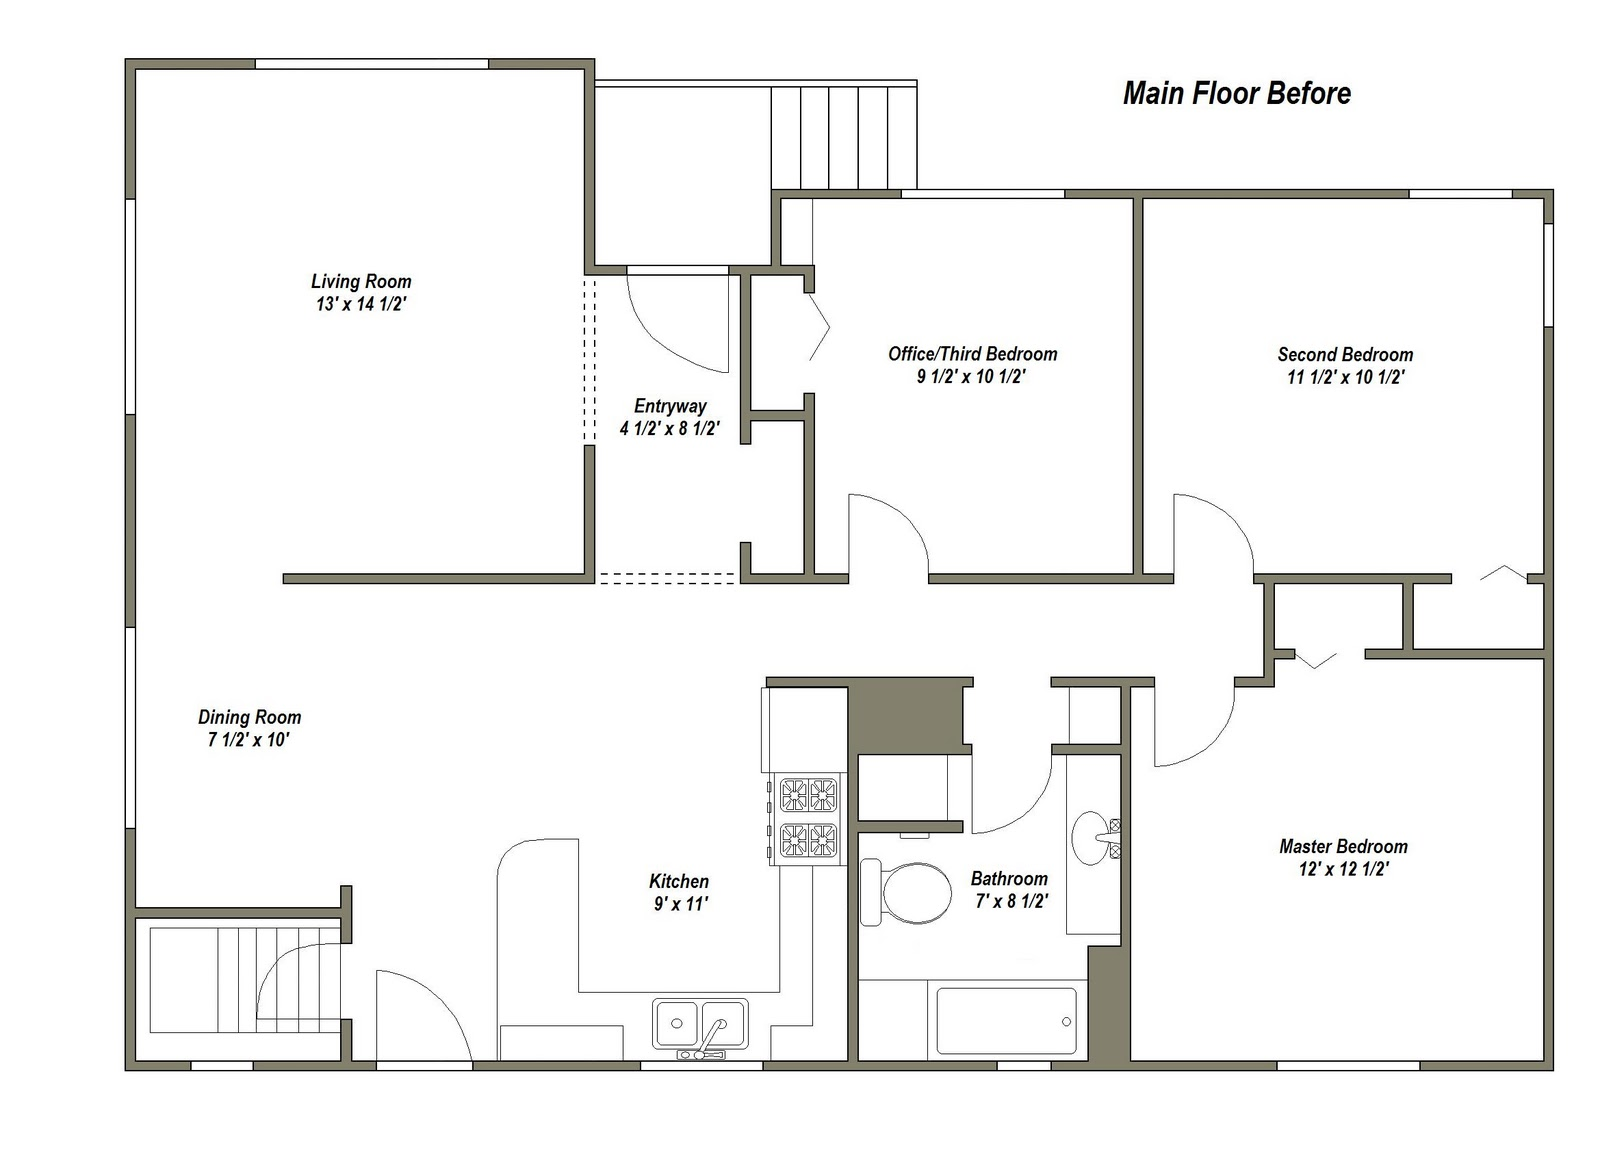 MAIN FLOOR PLAN AFTER (PROPOSED):